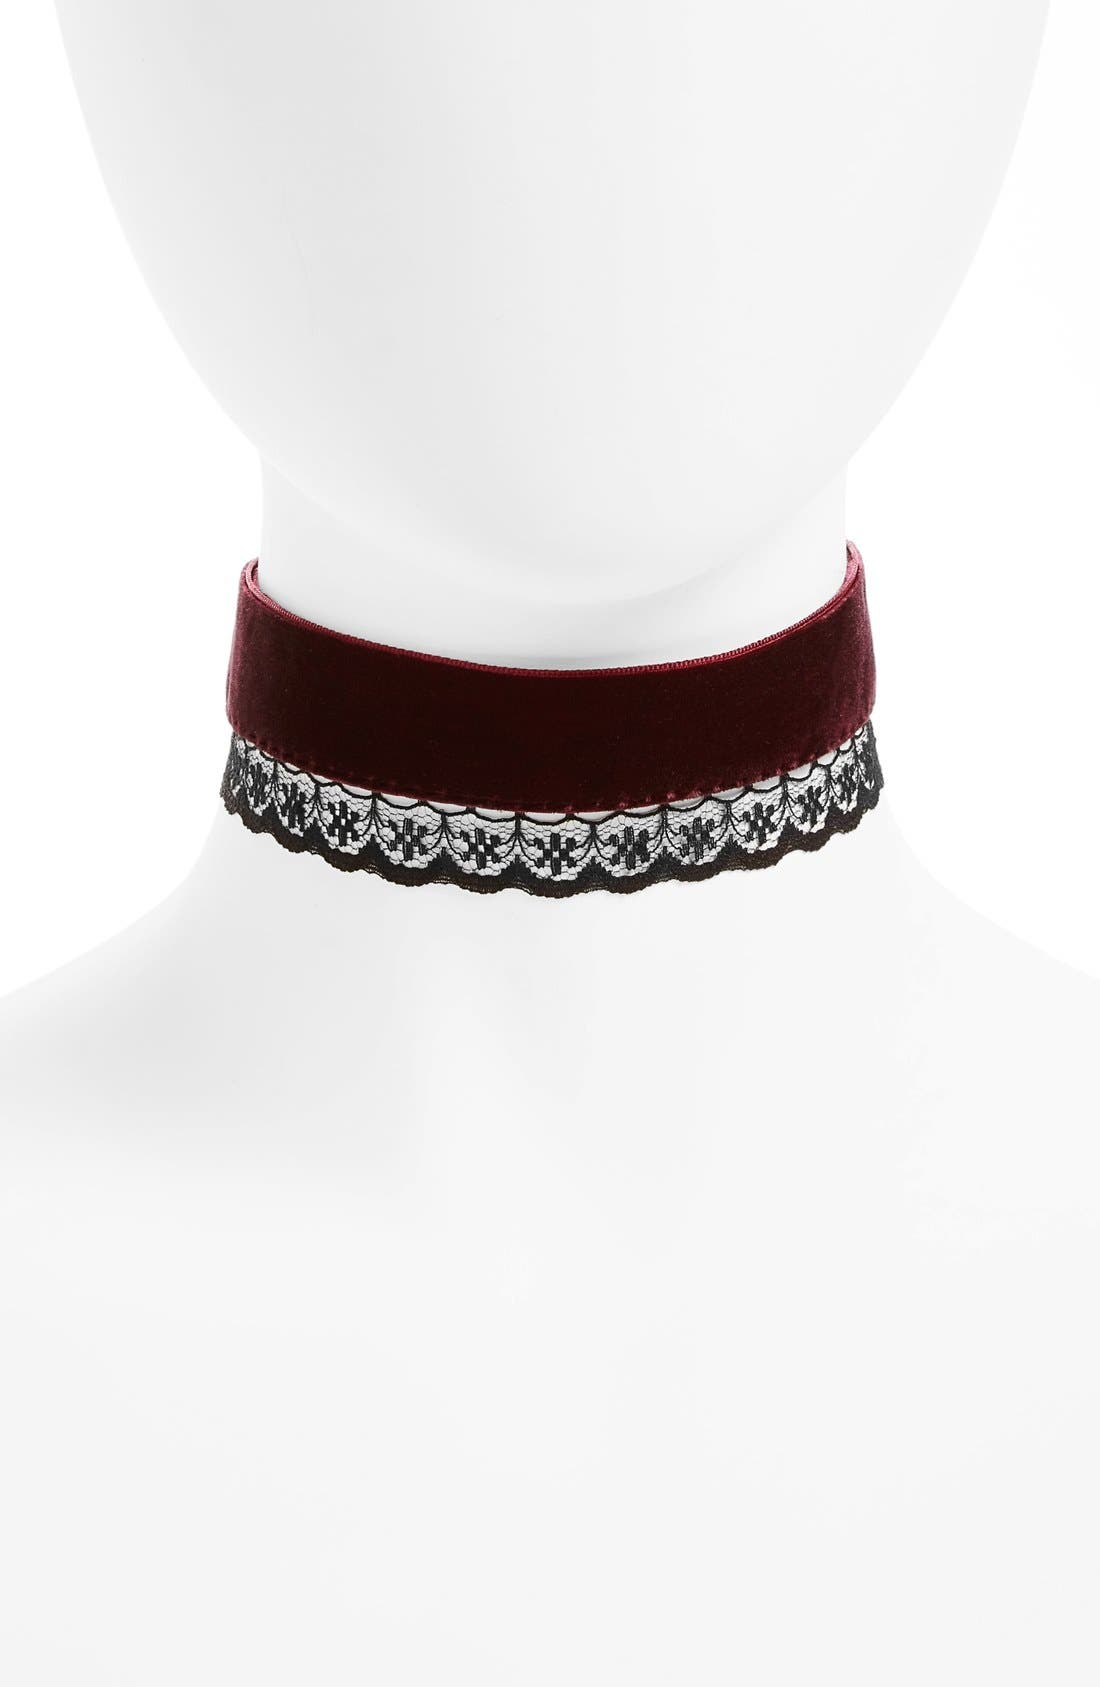 Alternate Image 1 Selected - BP. Velvet & Lace Choker